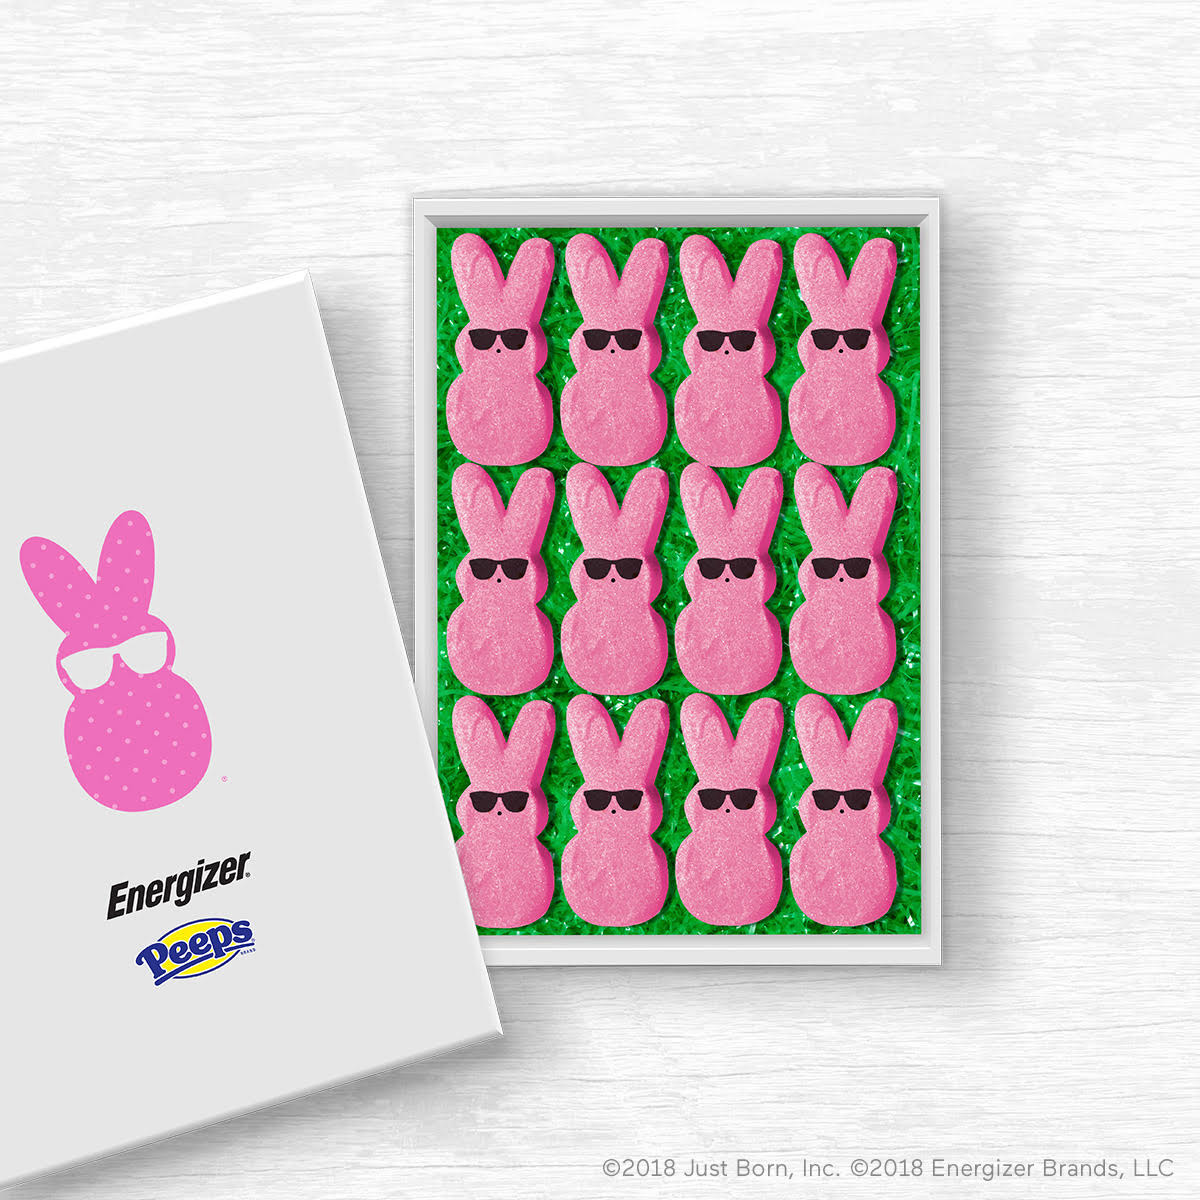 The Energizer Bunny™ adds his understated and chic addition, sunglasses, to each pink PEEPS® bunny this season.